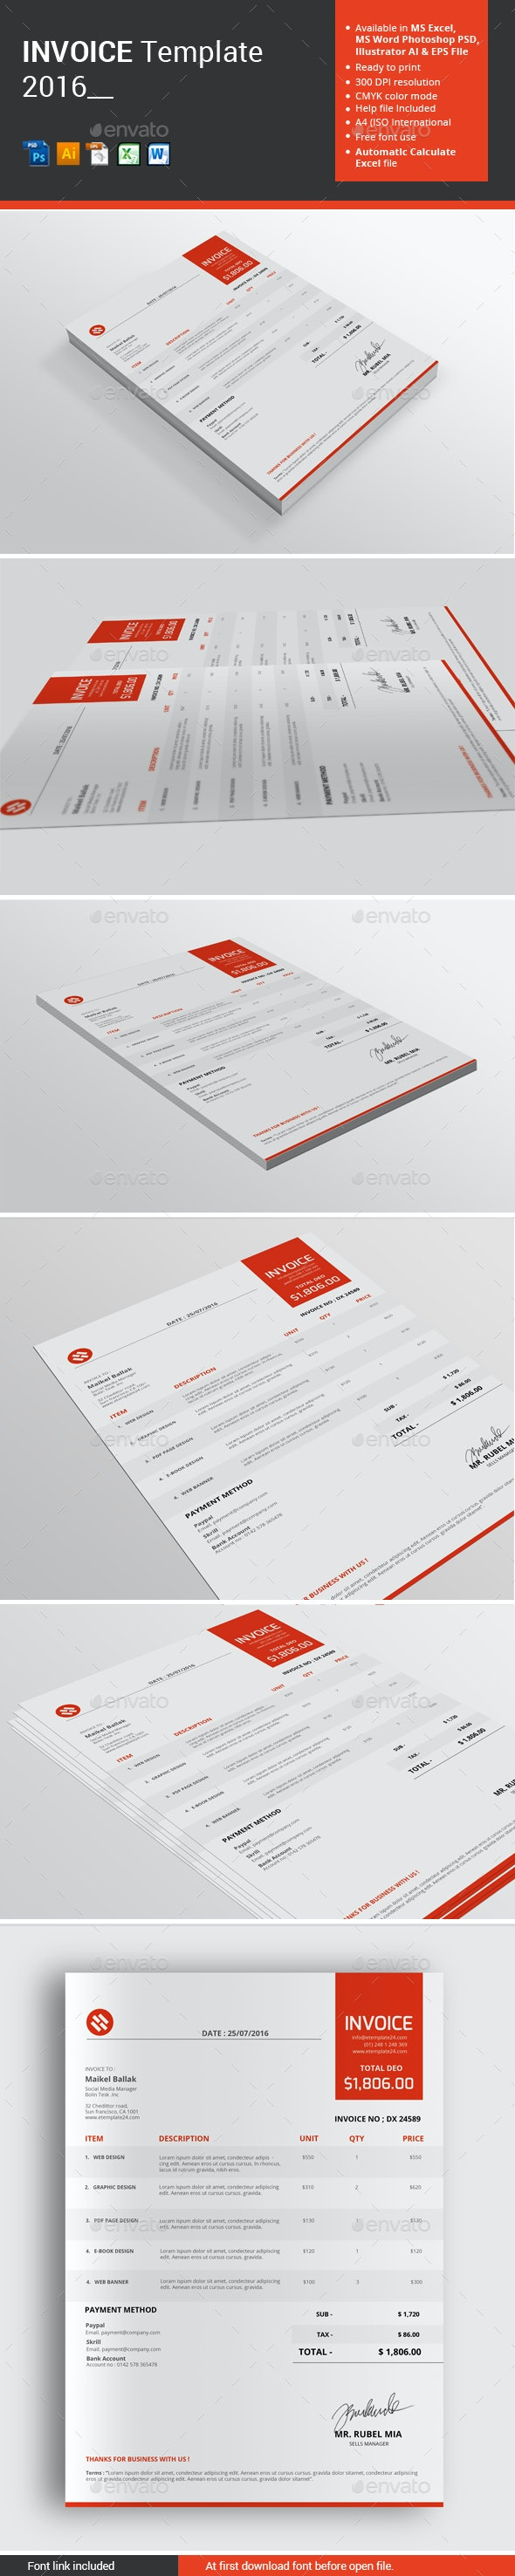 Invoice Template 2016 - Proposals & Invoices Stationery